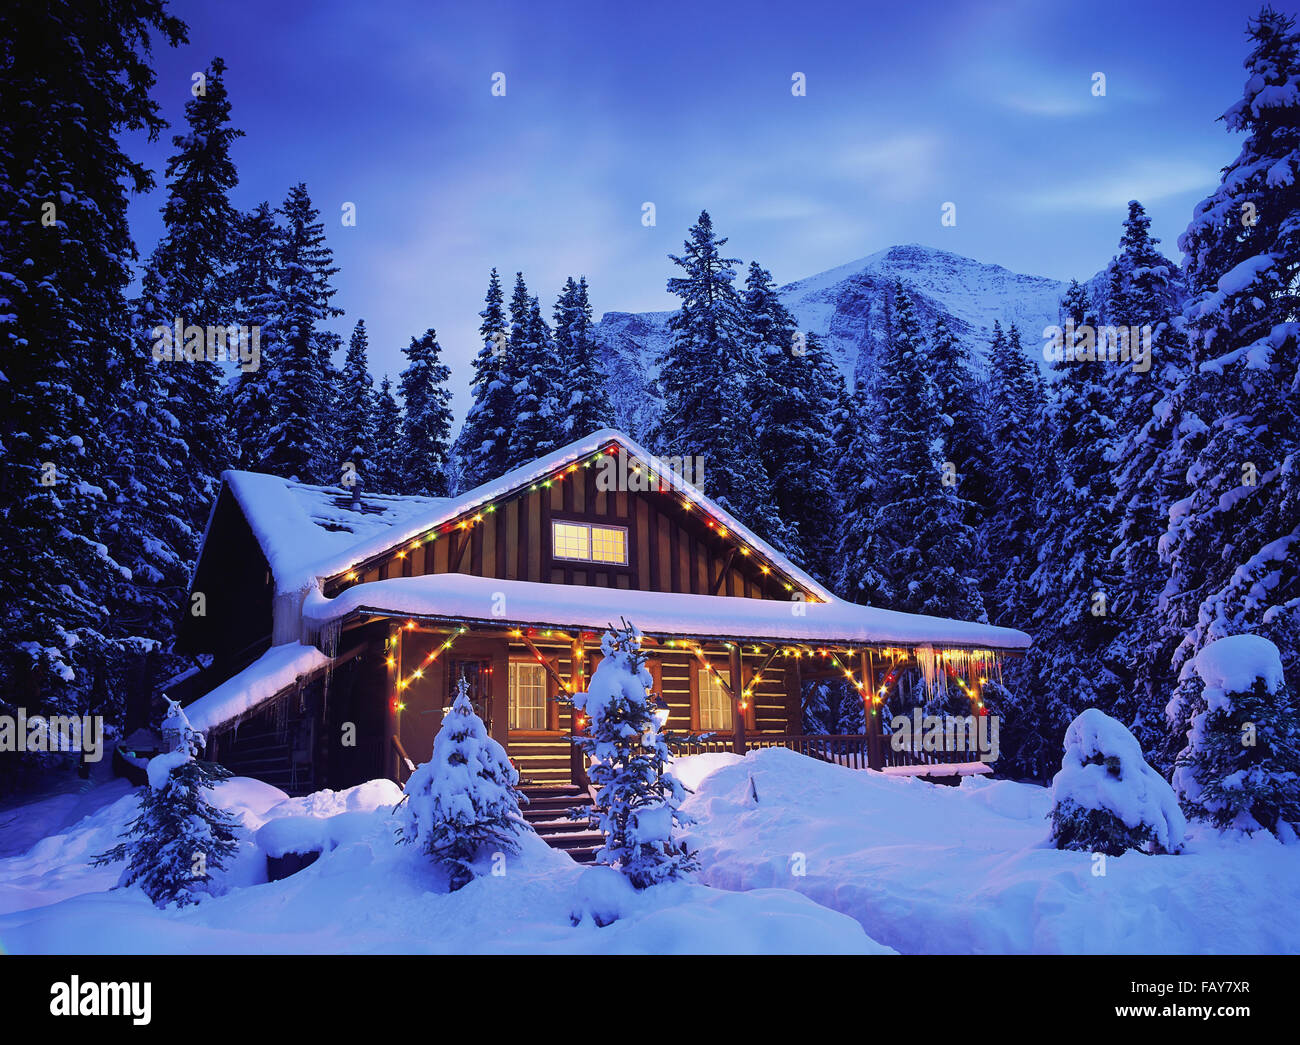 Christmas Vacation House Lights.Cabin In The Woods Illuminated By Christmas Lights Stock